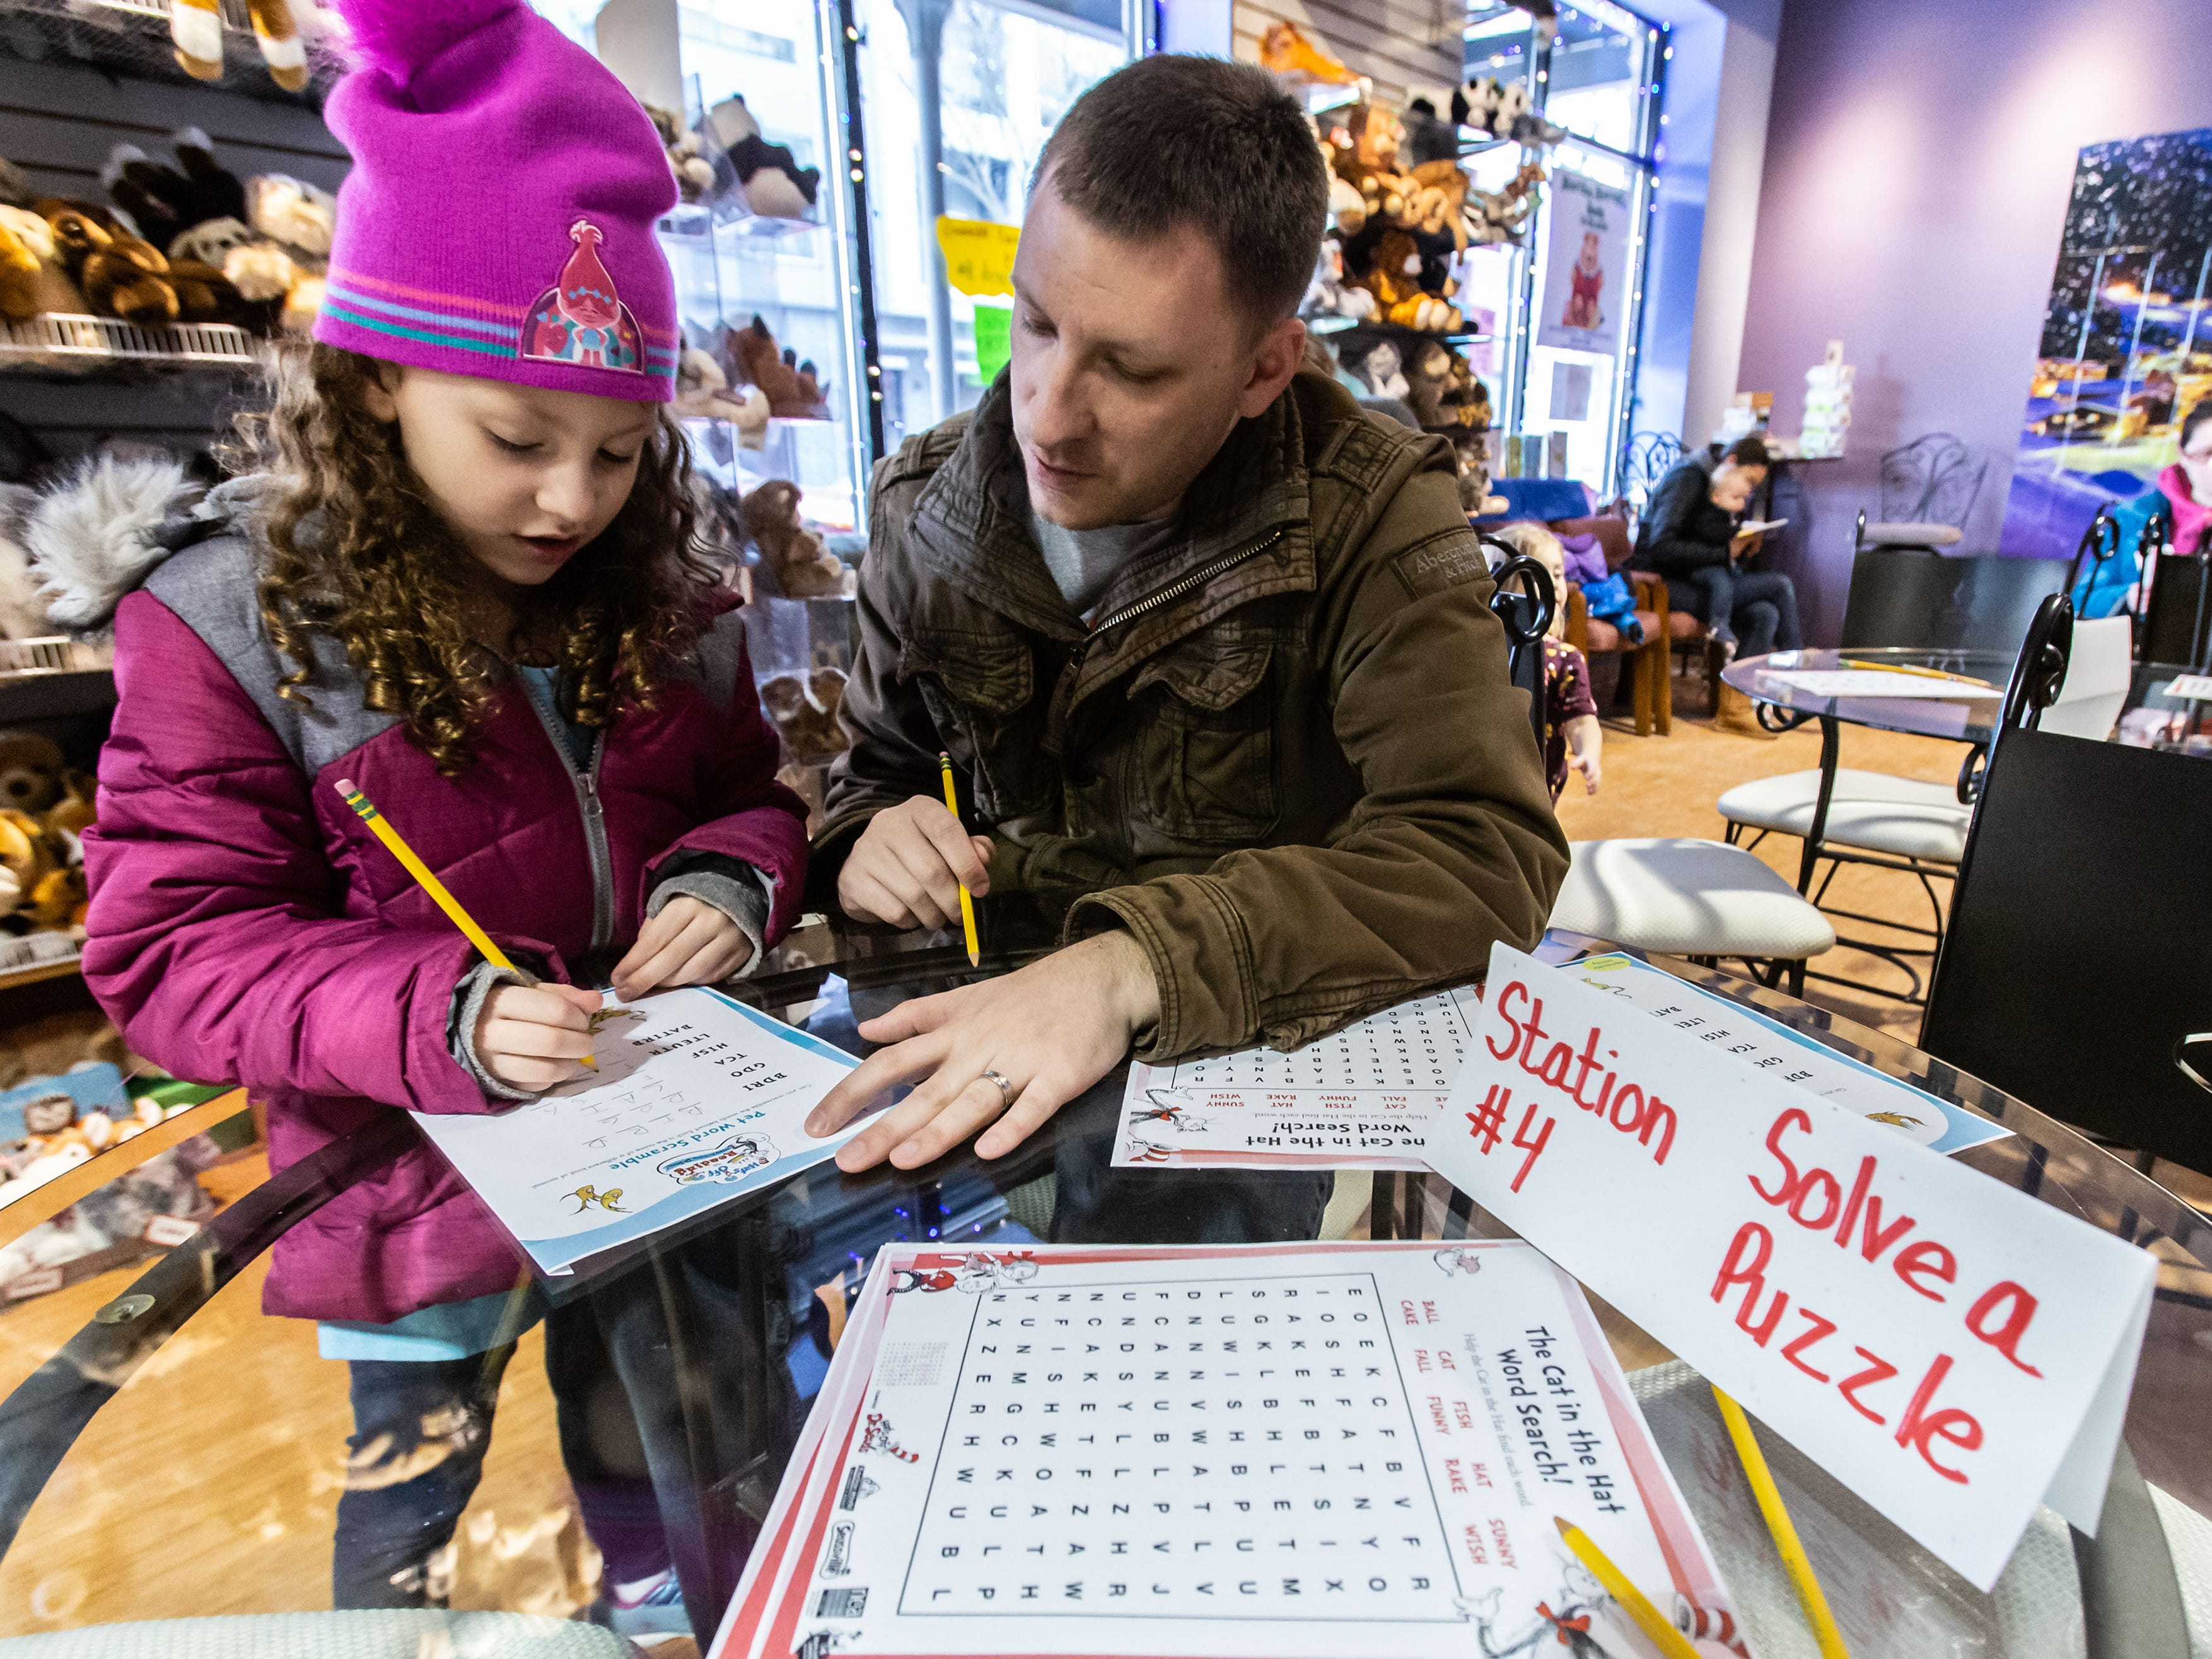 Mike Hillmer and his daughter Evelyn, 6, of Waukesha work on a puzzle at Martha Merrell's Books & Toys during the Birthday Bash Downtown Waukesha Art Crawl on Saturday, March 2, 2019. The event celebrated the birthday of Dr. Seuss with a special birthday party complete with cake, coloring pages and more at Martha Merrell's Books.